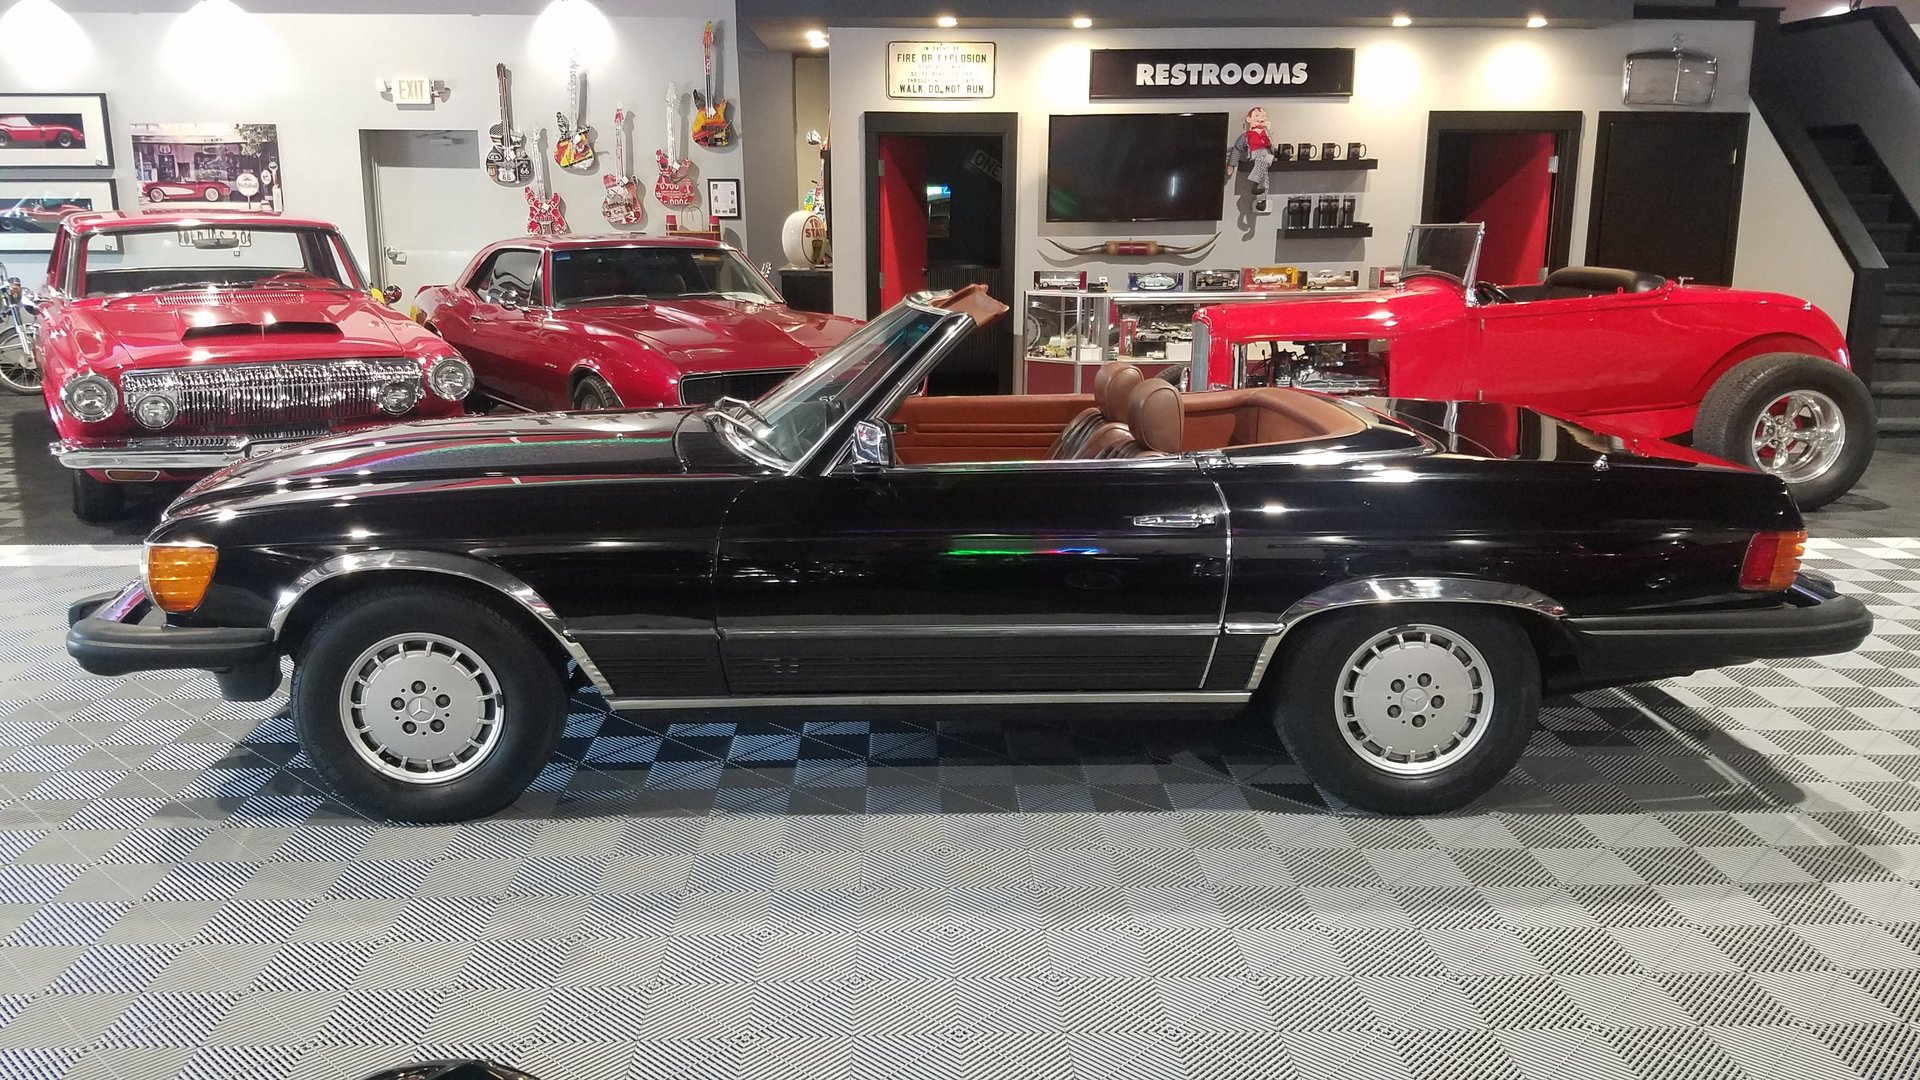 1981 mercedes benz sl380 for sale 89657 mcg for Garage mercedes auxerre 89